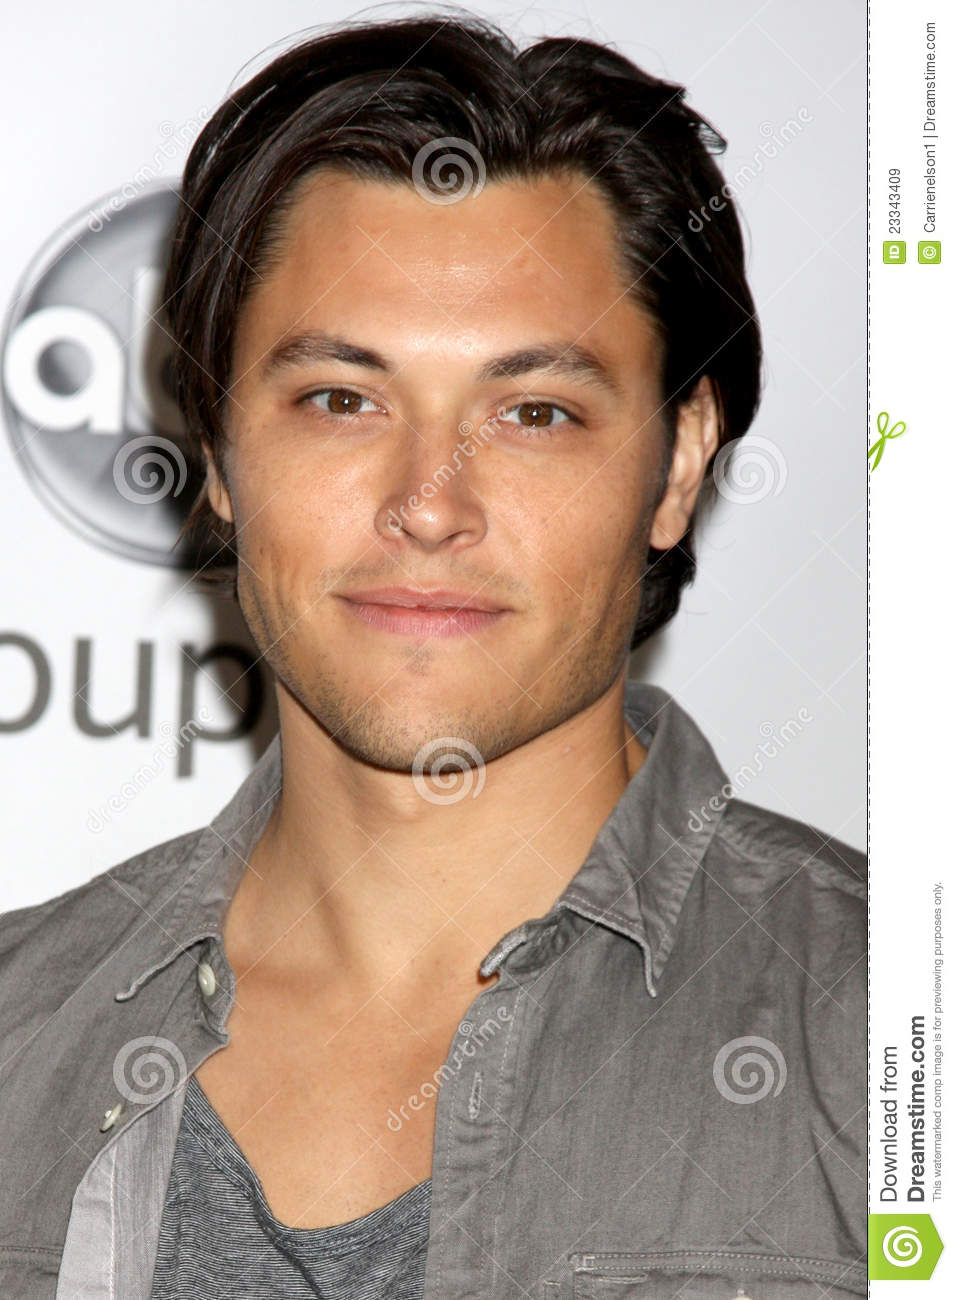 blair redford 90210blair redford girlfriend 2017, blair redford imdb, blair redford 90210, blair redford instagram, blair redford, blair redford married, blair redford and jessica serfaty, blair redford and alexandra chando, blair redford burlesque, blair redford wiki, blair redford wdw, blair redford wife, blair redford parents, blair redford dating, blair redford switched at birth, blair redford twitter, blair redford ethnicity, blair redford net worth, blair redford satisfaction, blair redford shirtless